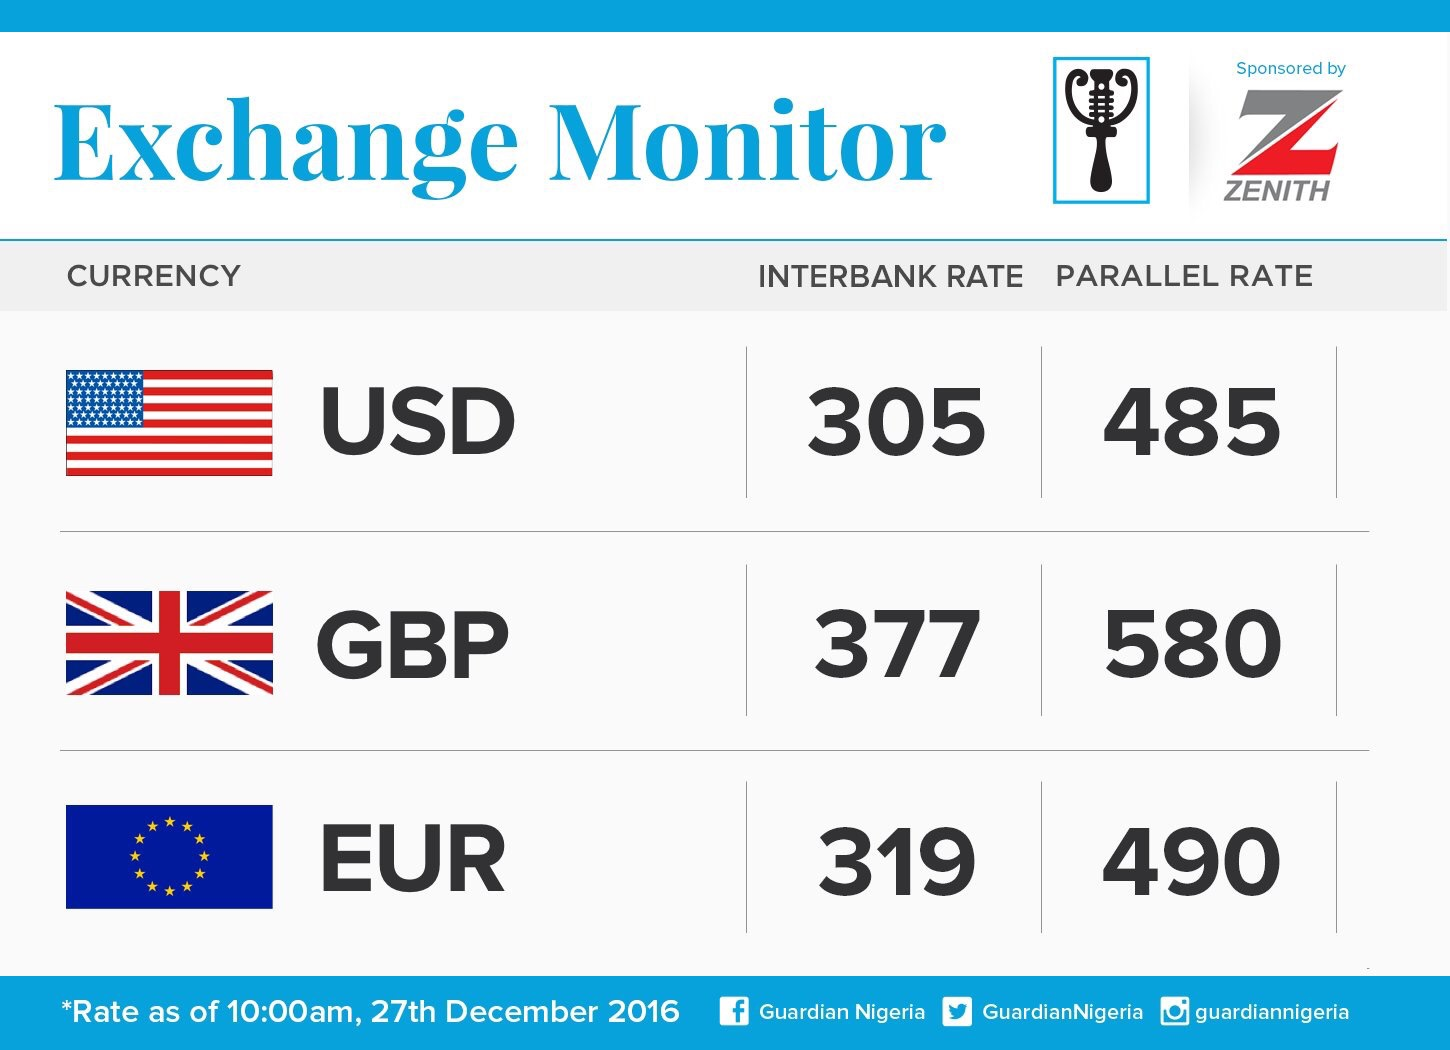 Exchange Rate For 27th December 2016